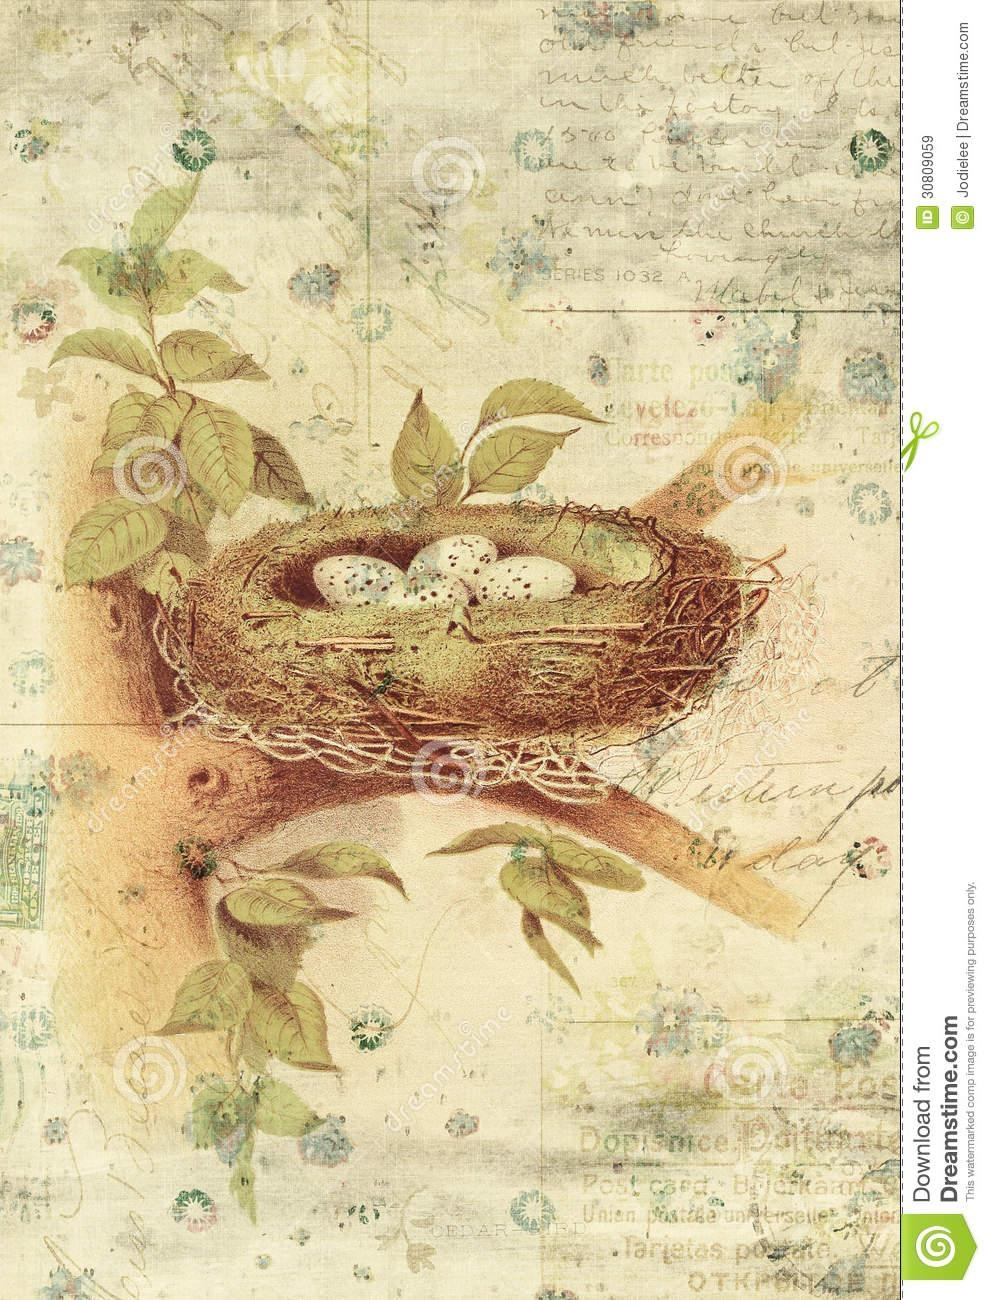 Nest And Bird Eggs Botanical Vintage Style Wall Art With Textured For Vintage Style Wall Art (Image 17 of 20)